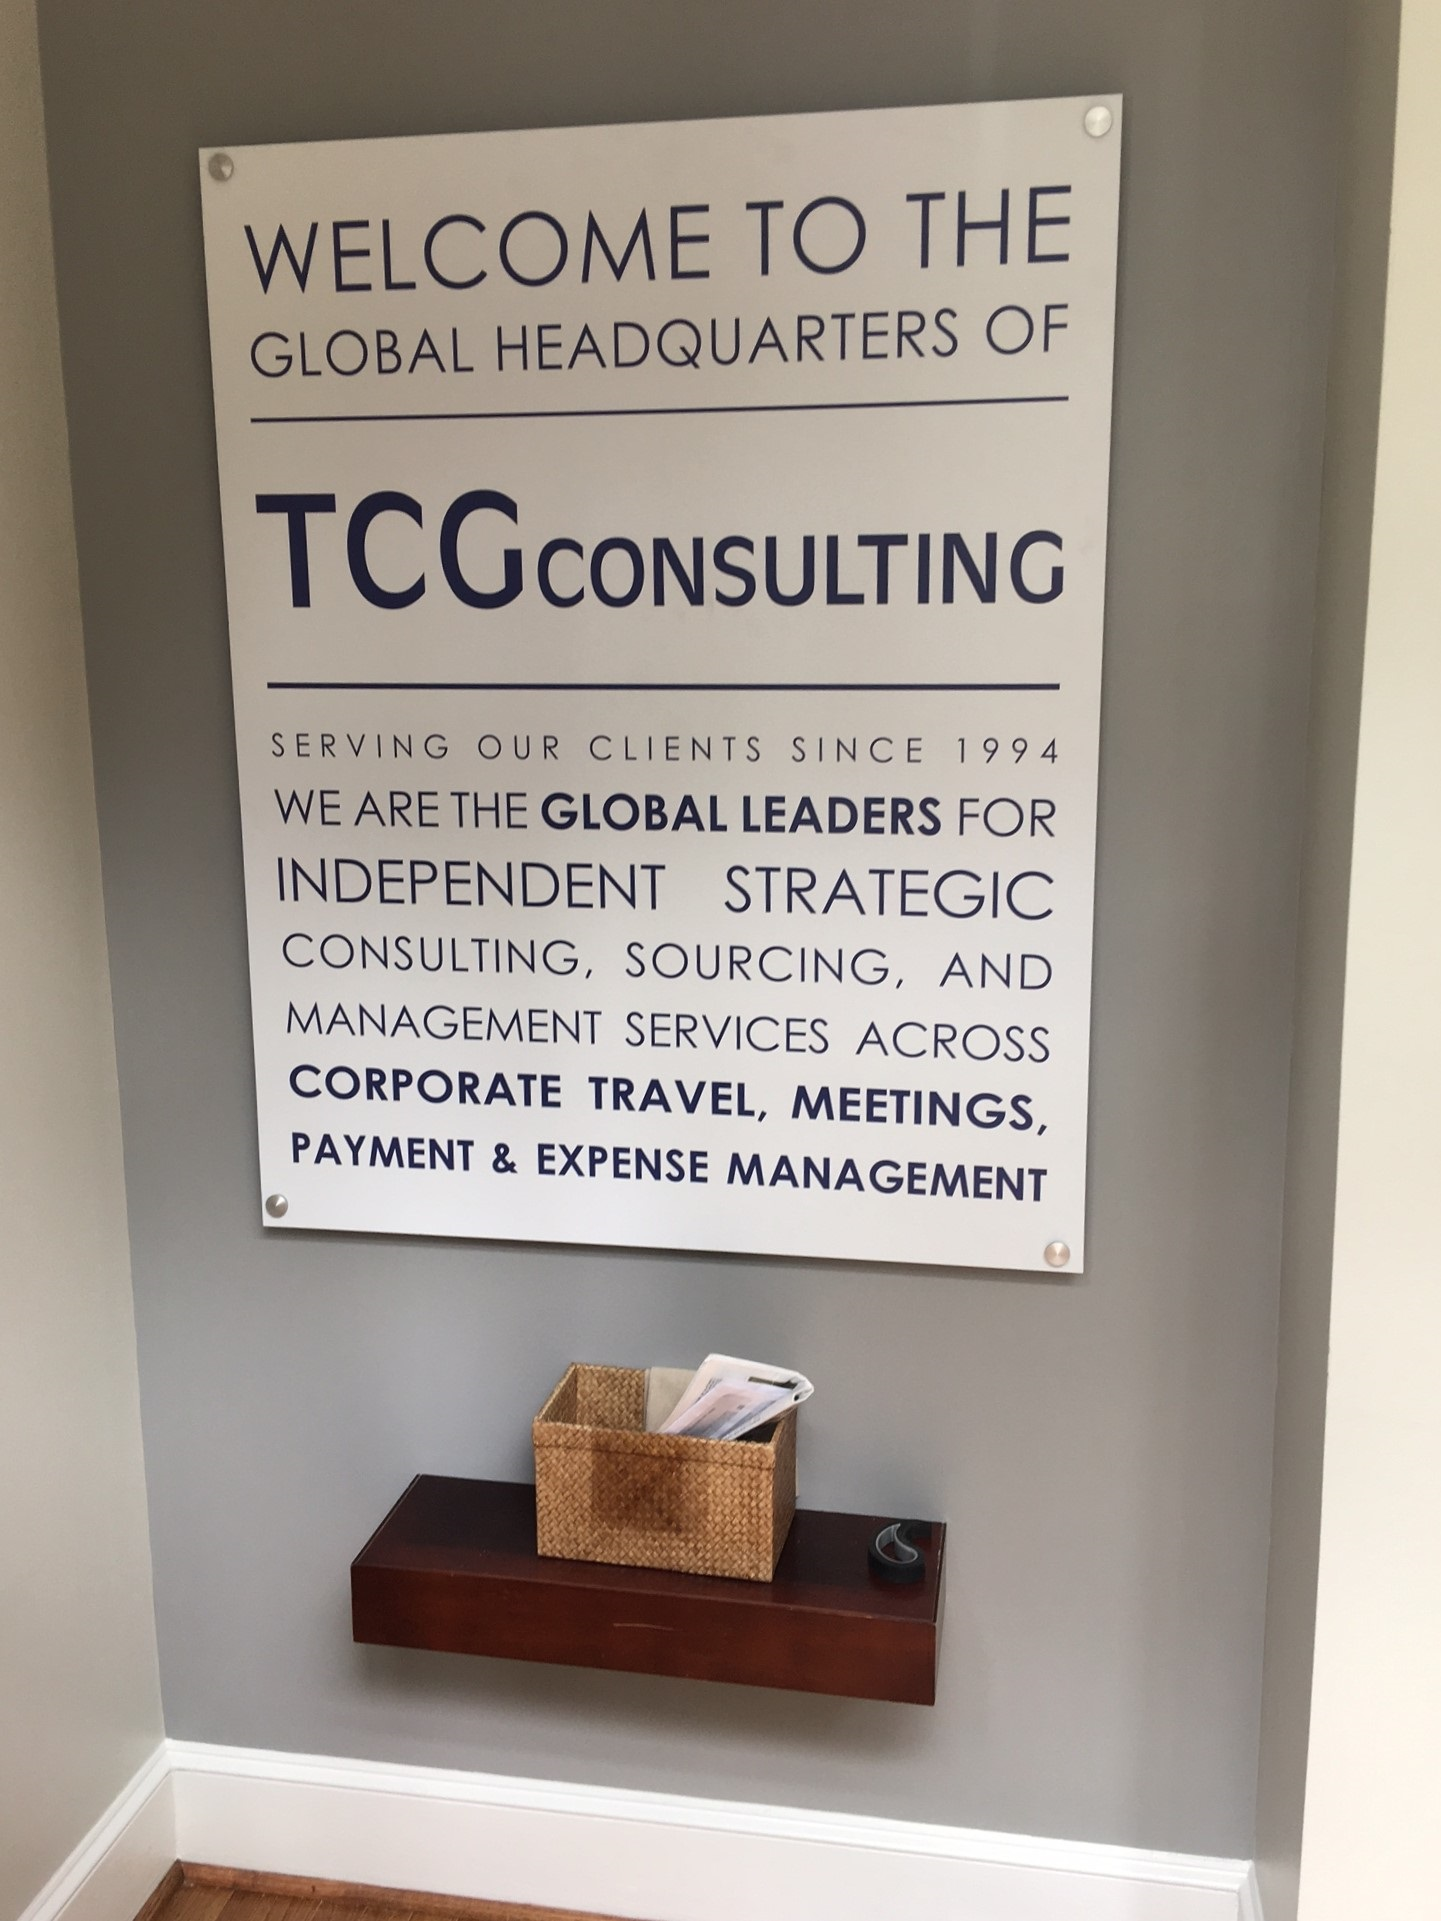 interior feature wall signs, lobby signs, signs 28203, signs charlotte, office signs, business signs, custom signs, wall signs, indoor signs, logo signs, directional signs, interior feature wall sign, brand signs,